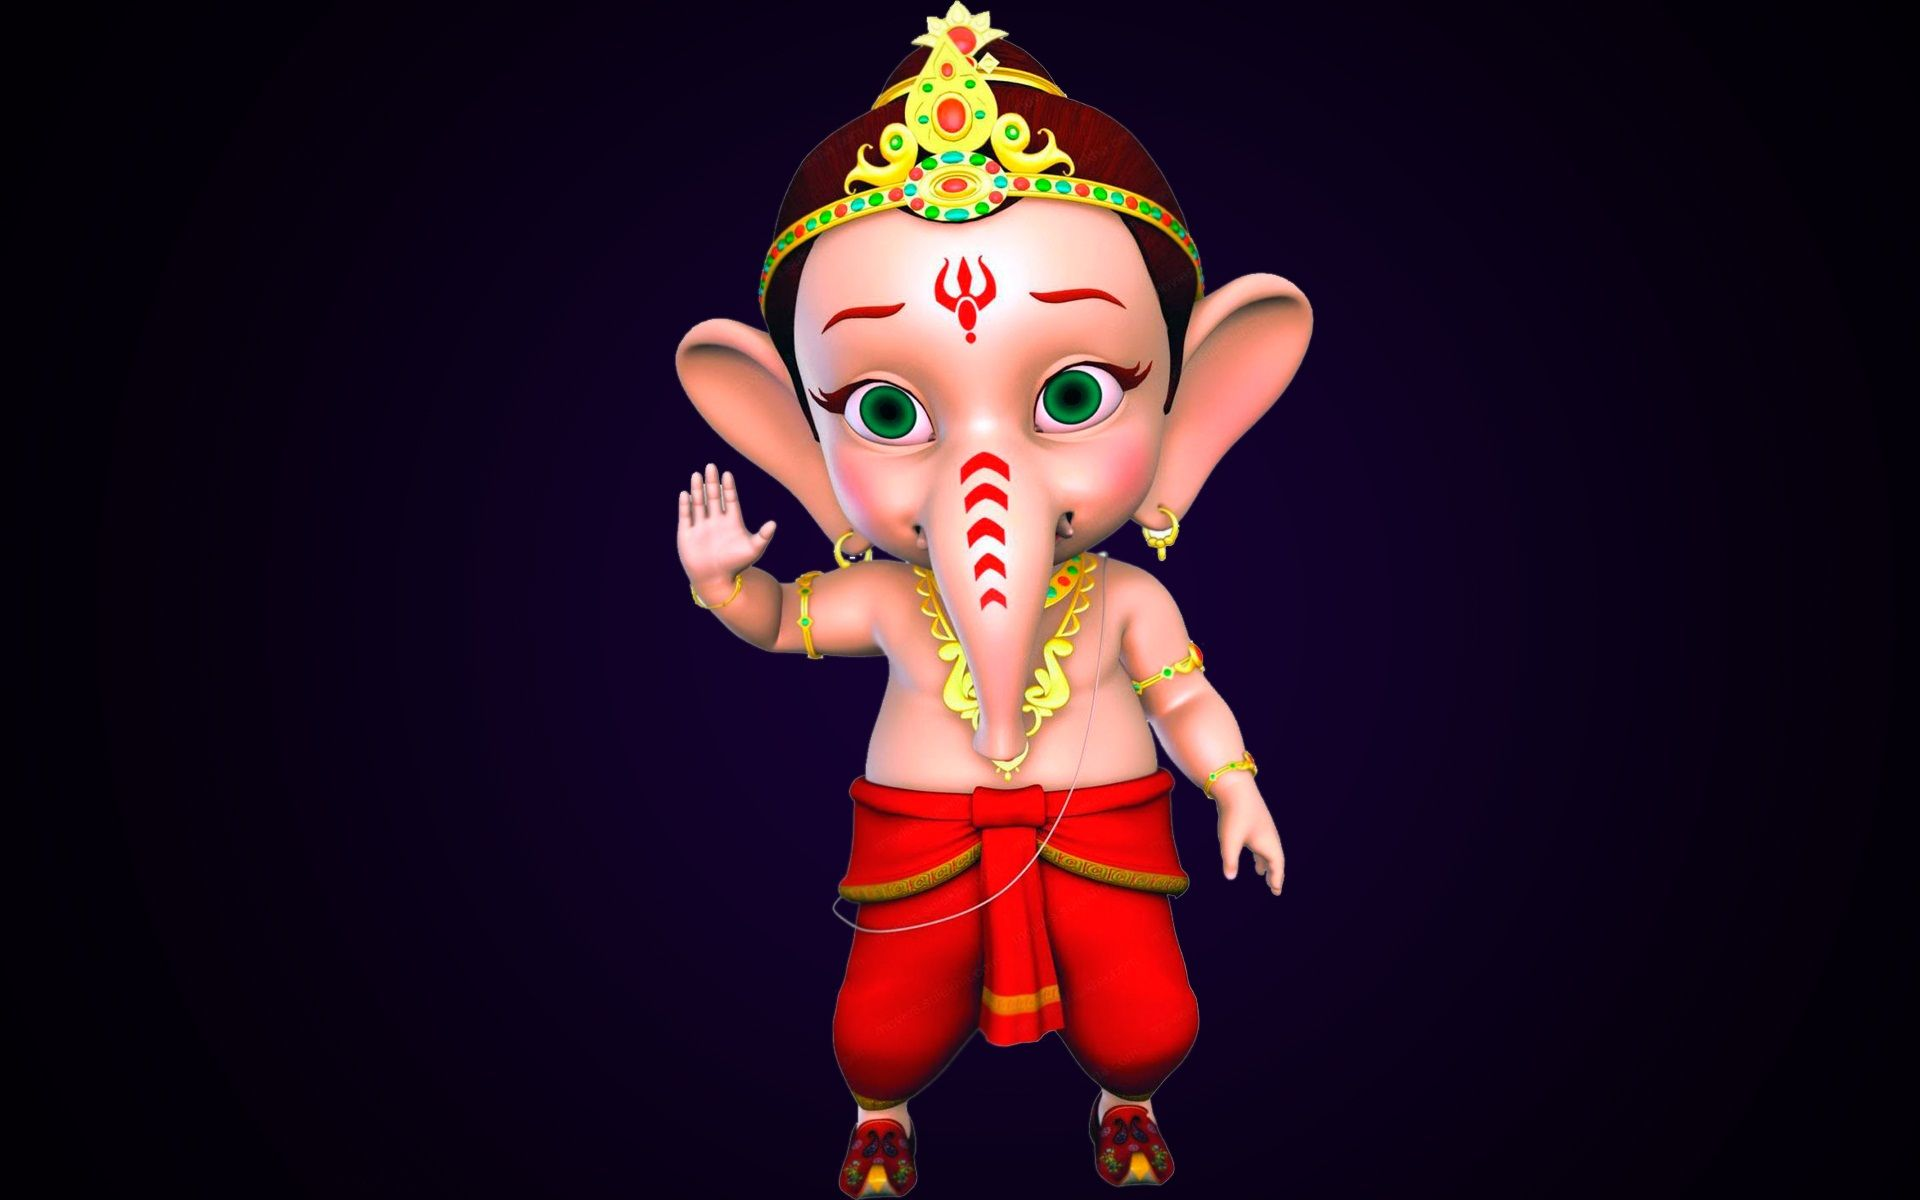 Bal Ganesh Animation Hd Wallpaper Beautiful Hd Wallpaper In 2020 Happy Ganesh Chaturthi Images Ganesh Wallpaper Ganesh Chaturthi Images